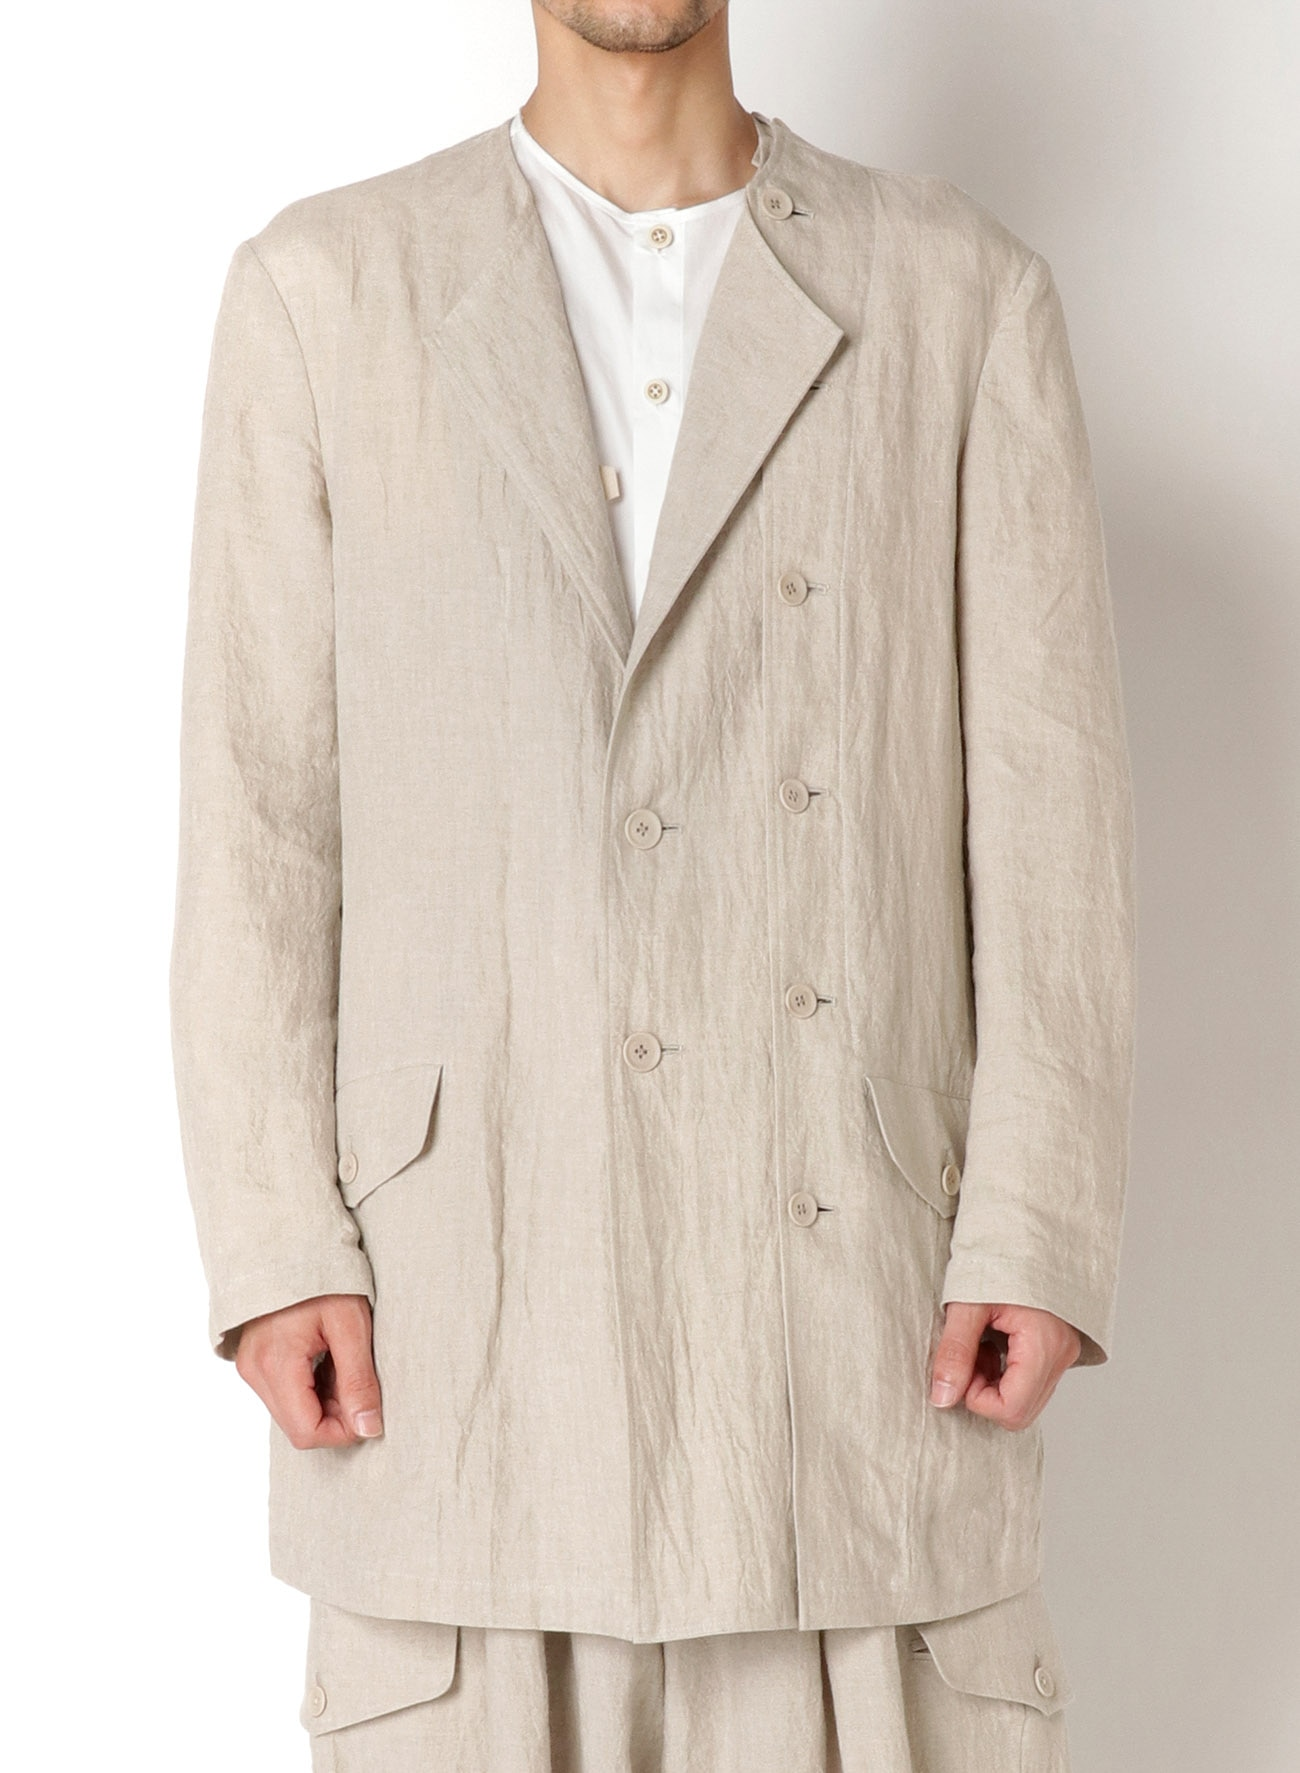 LINEN ddw NO COLLAR LEFT BUTTON JACKET